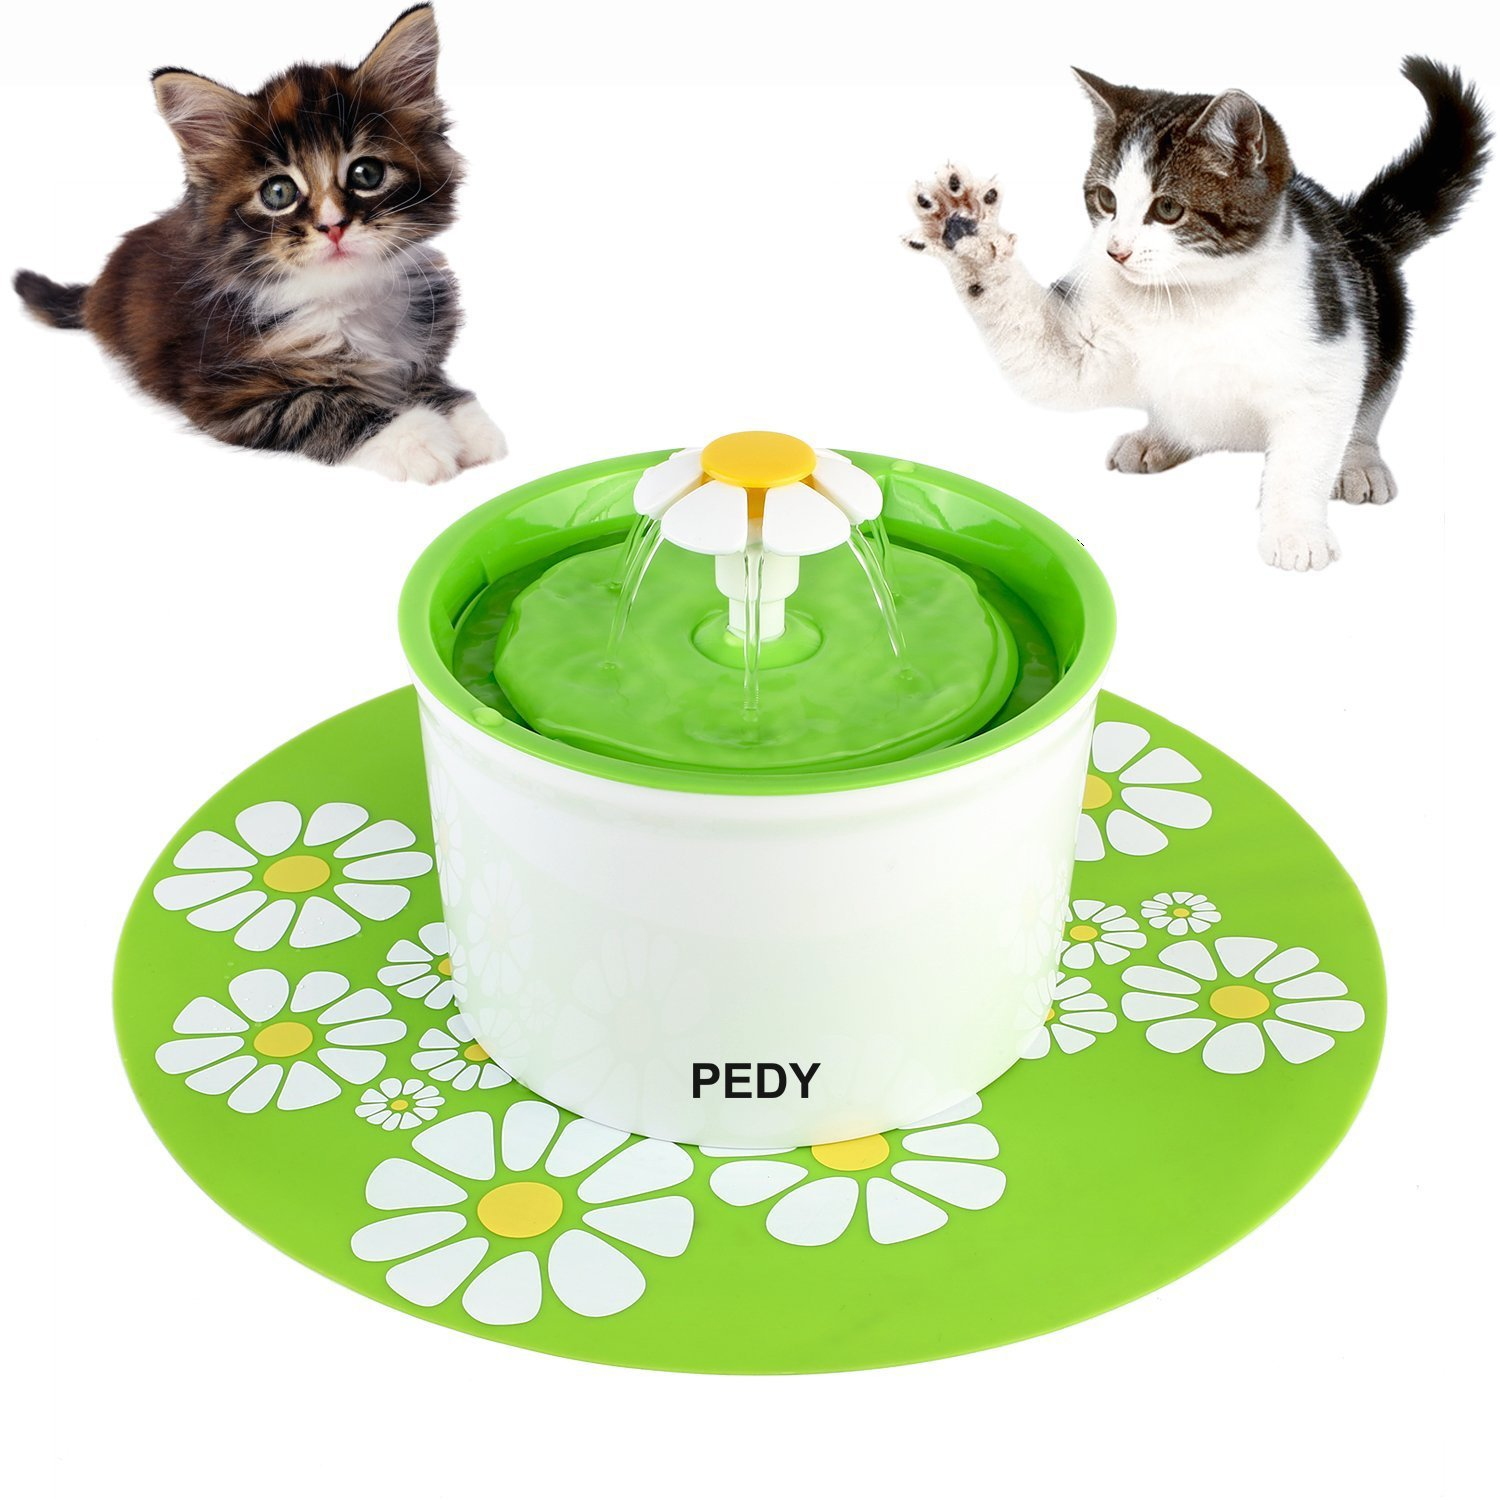 Pedy Cat Water Fountain Flower Fountain, Automatic Pet Water Dispenser, Pet Water Fountain for Cats and Dogs with Filter & Silicone Mat, Green